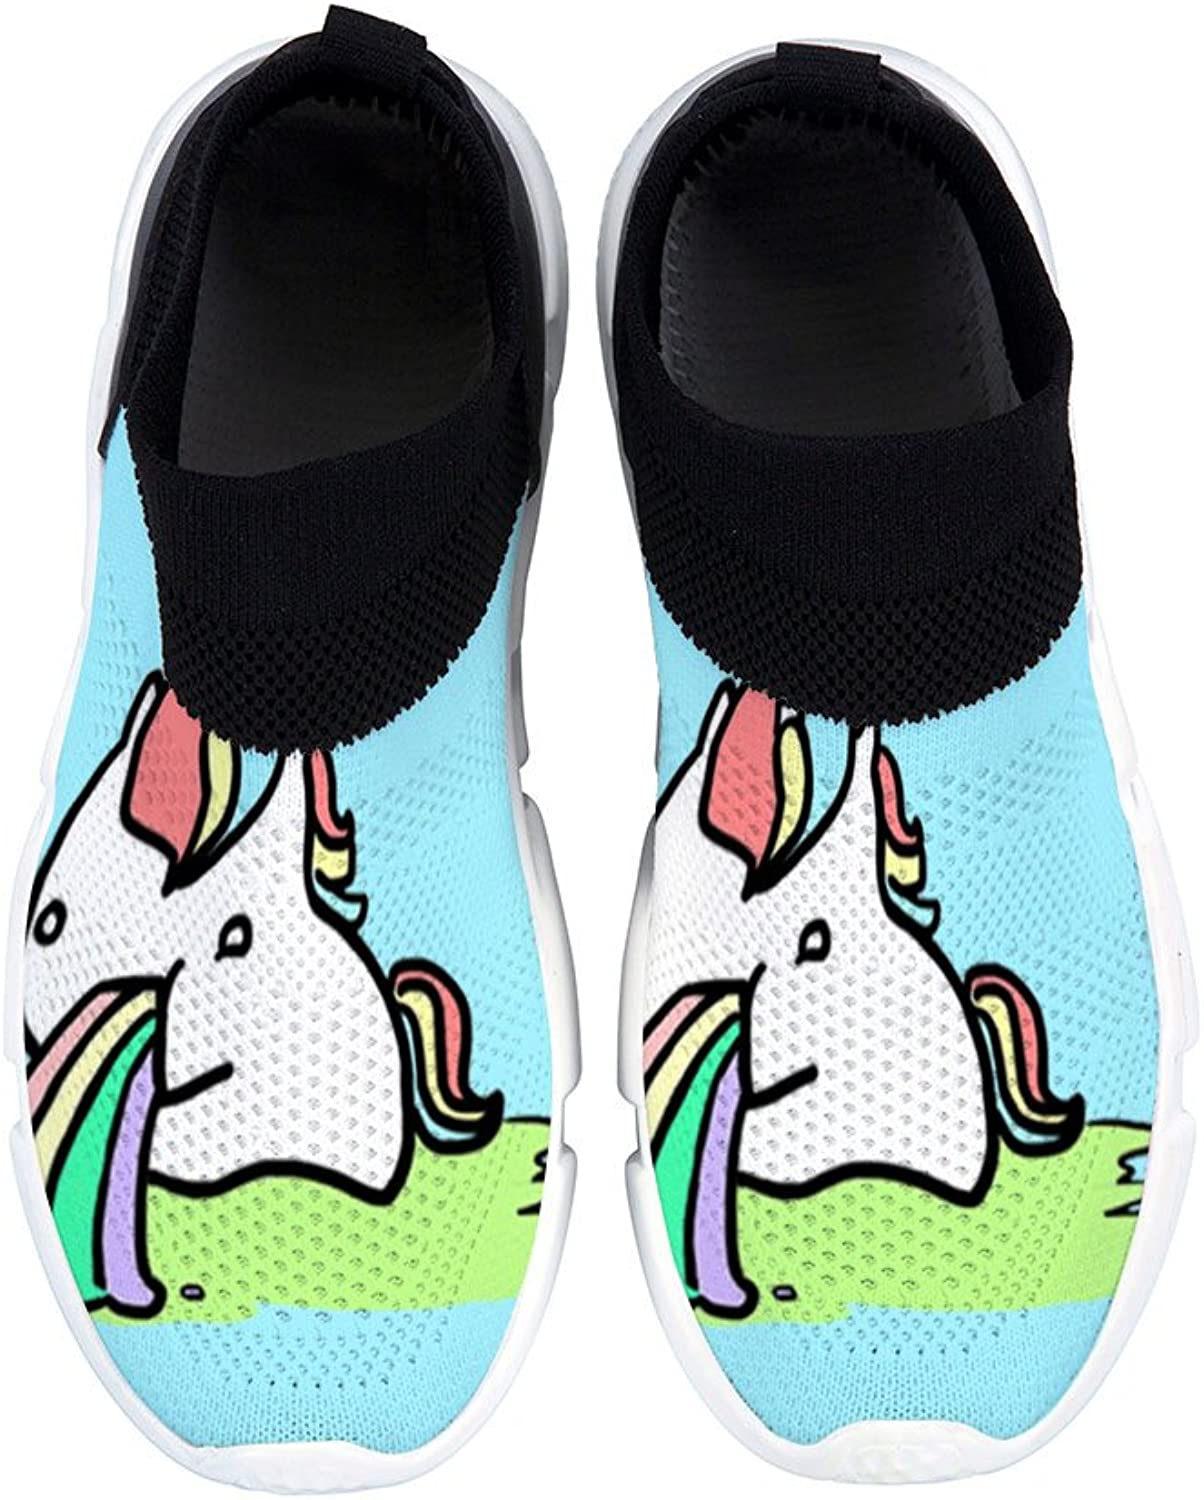 DREA New Women Casual Loafers Casual Flats shoes Travelling Cute Unicorn shoes